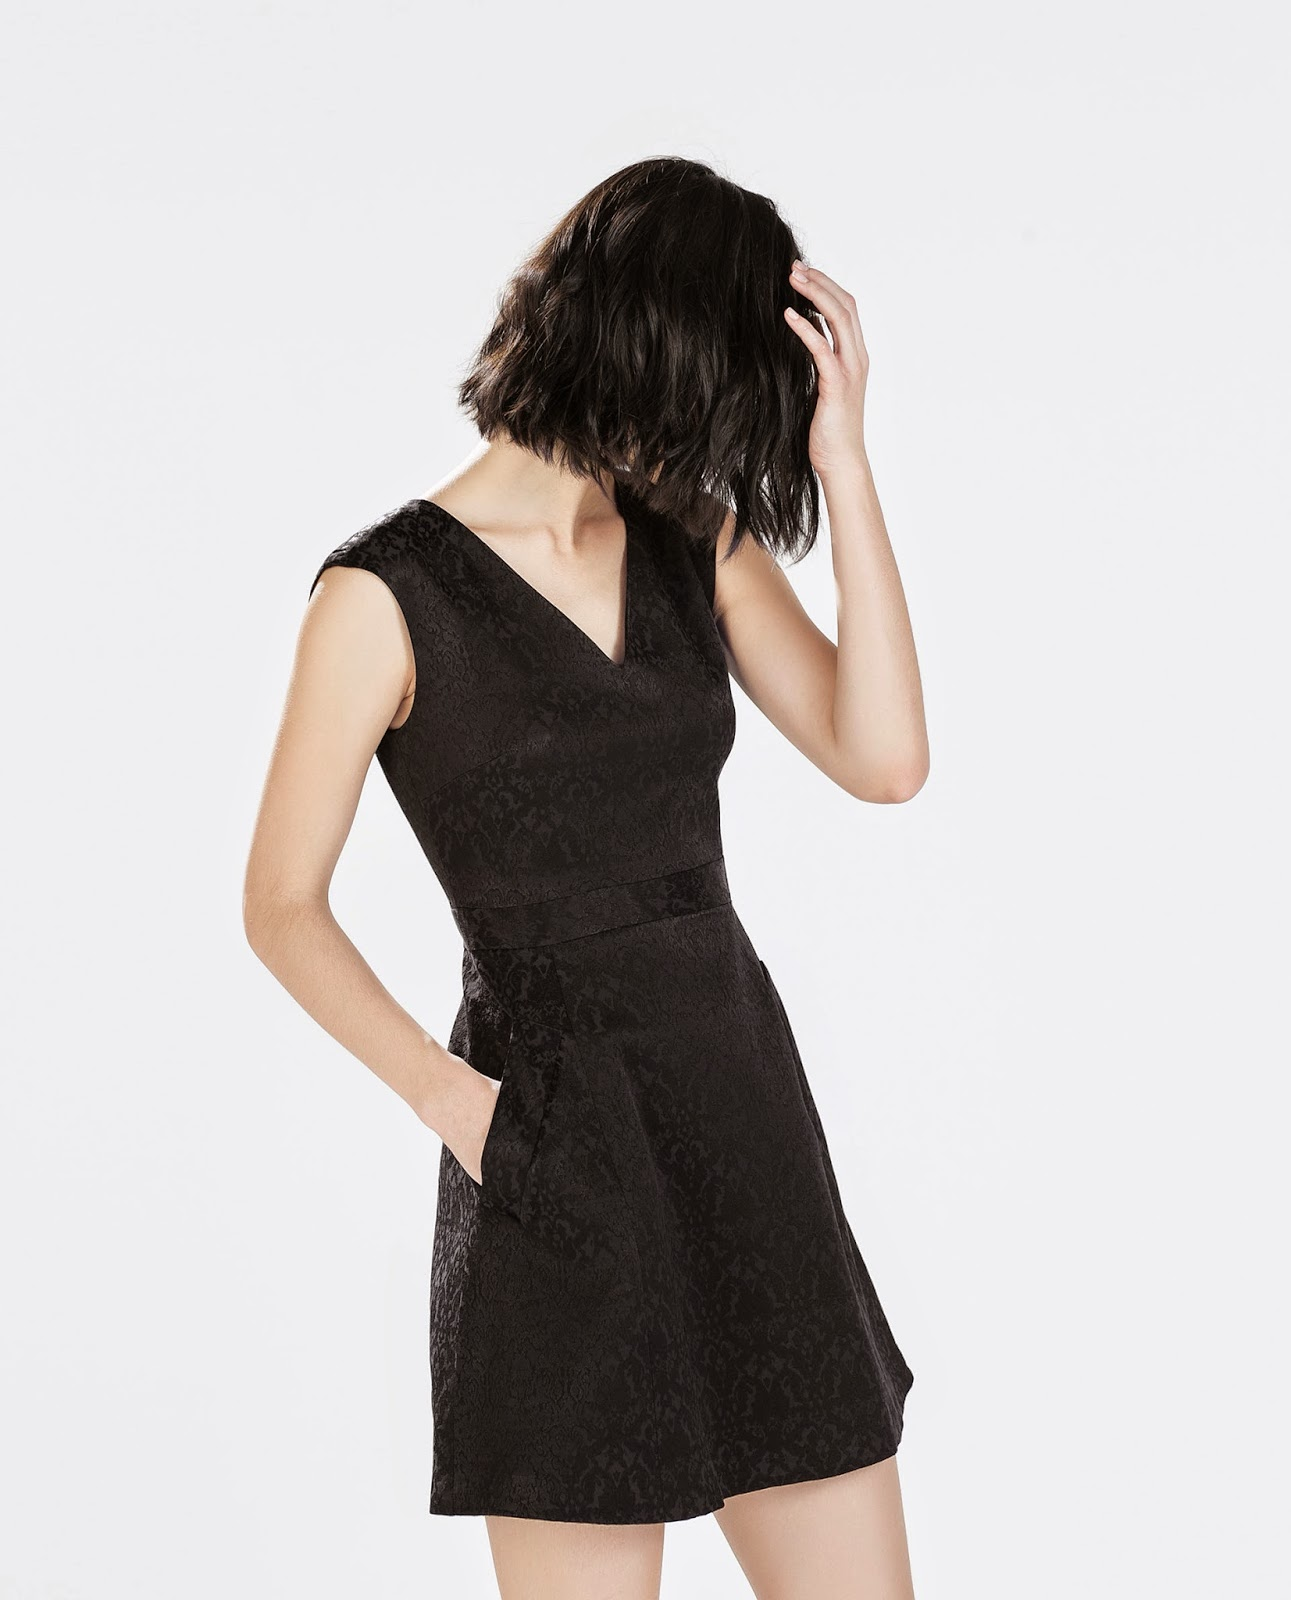 zara black mini dress, zara black v neck dress,